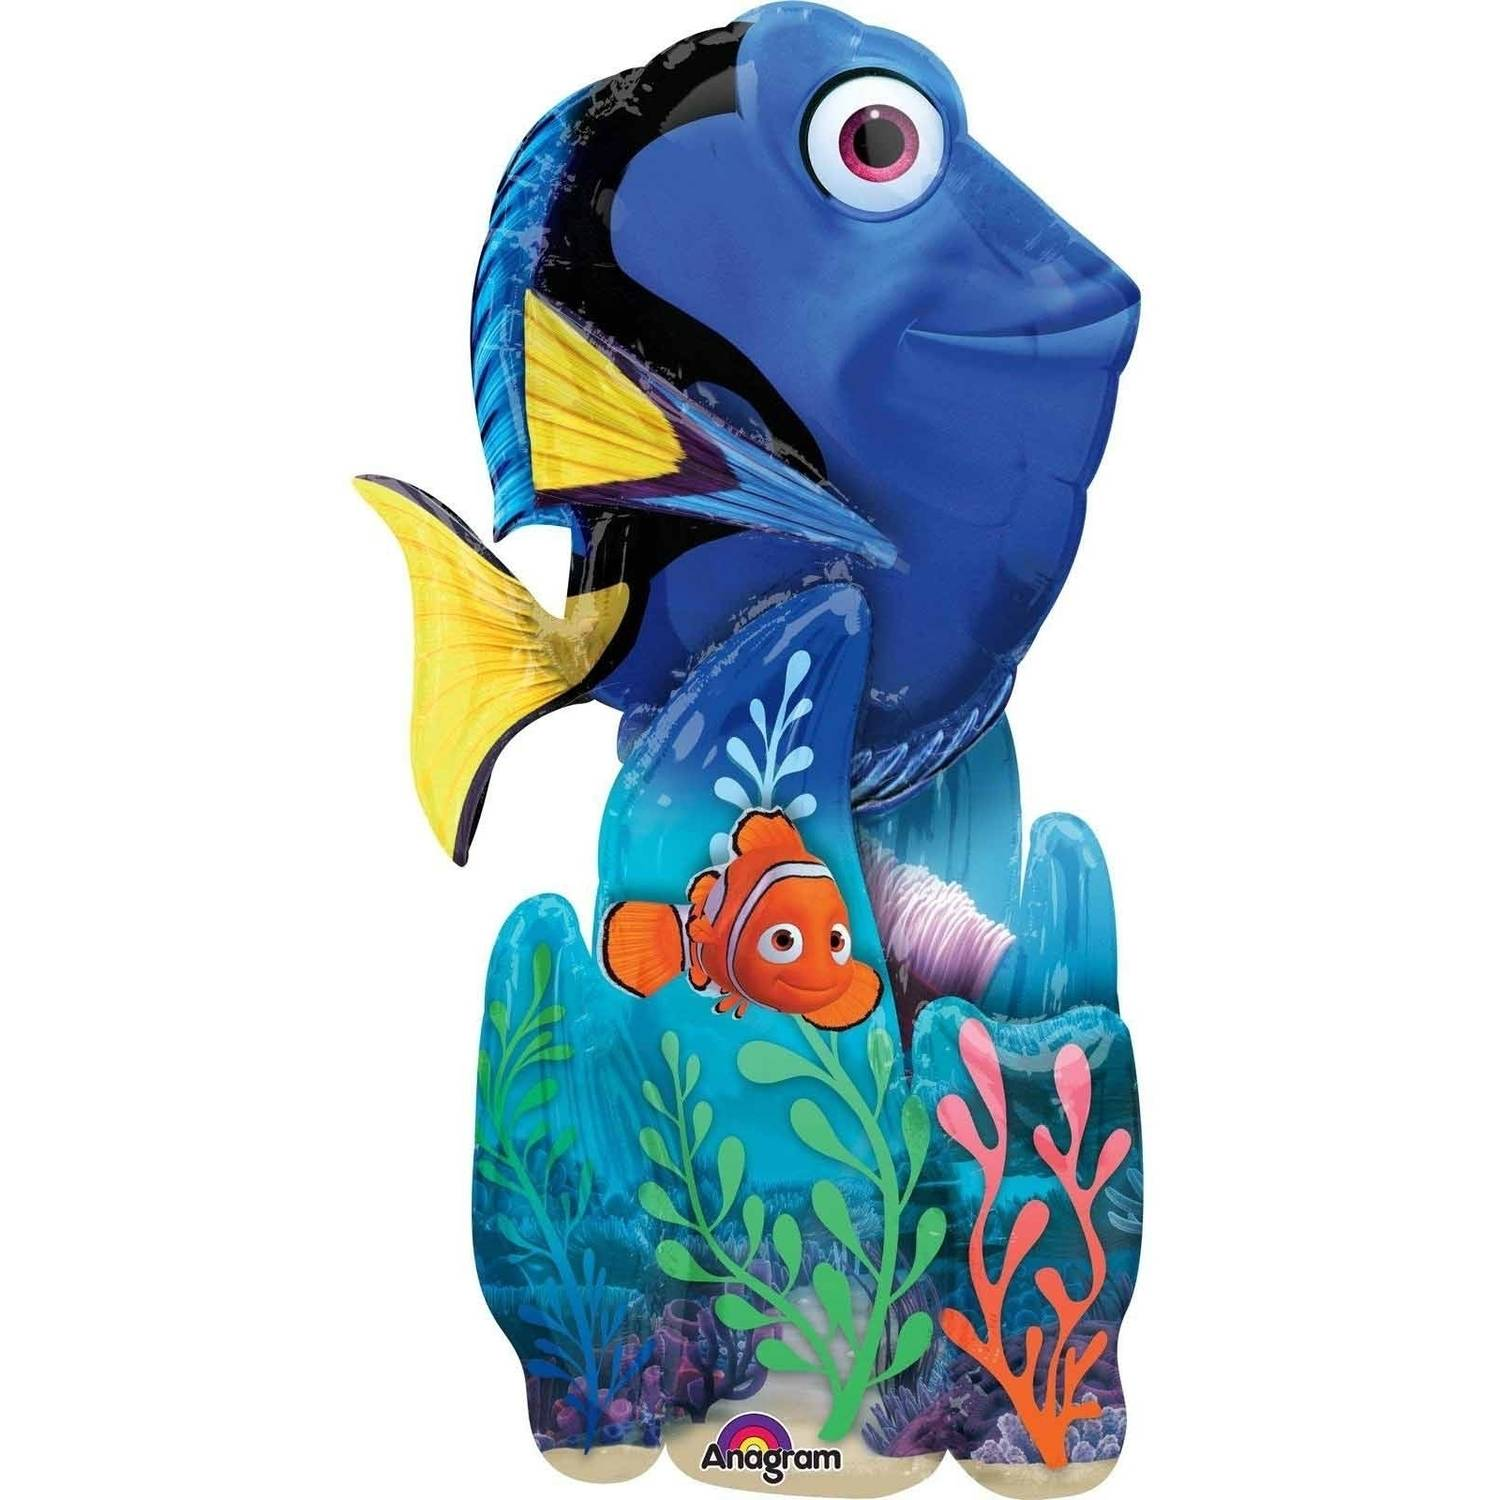 Disney Finding Dory Airwalker Foil Balloon